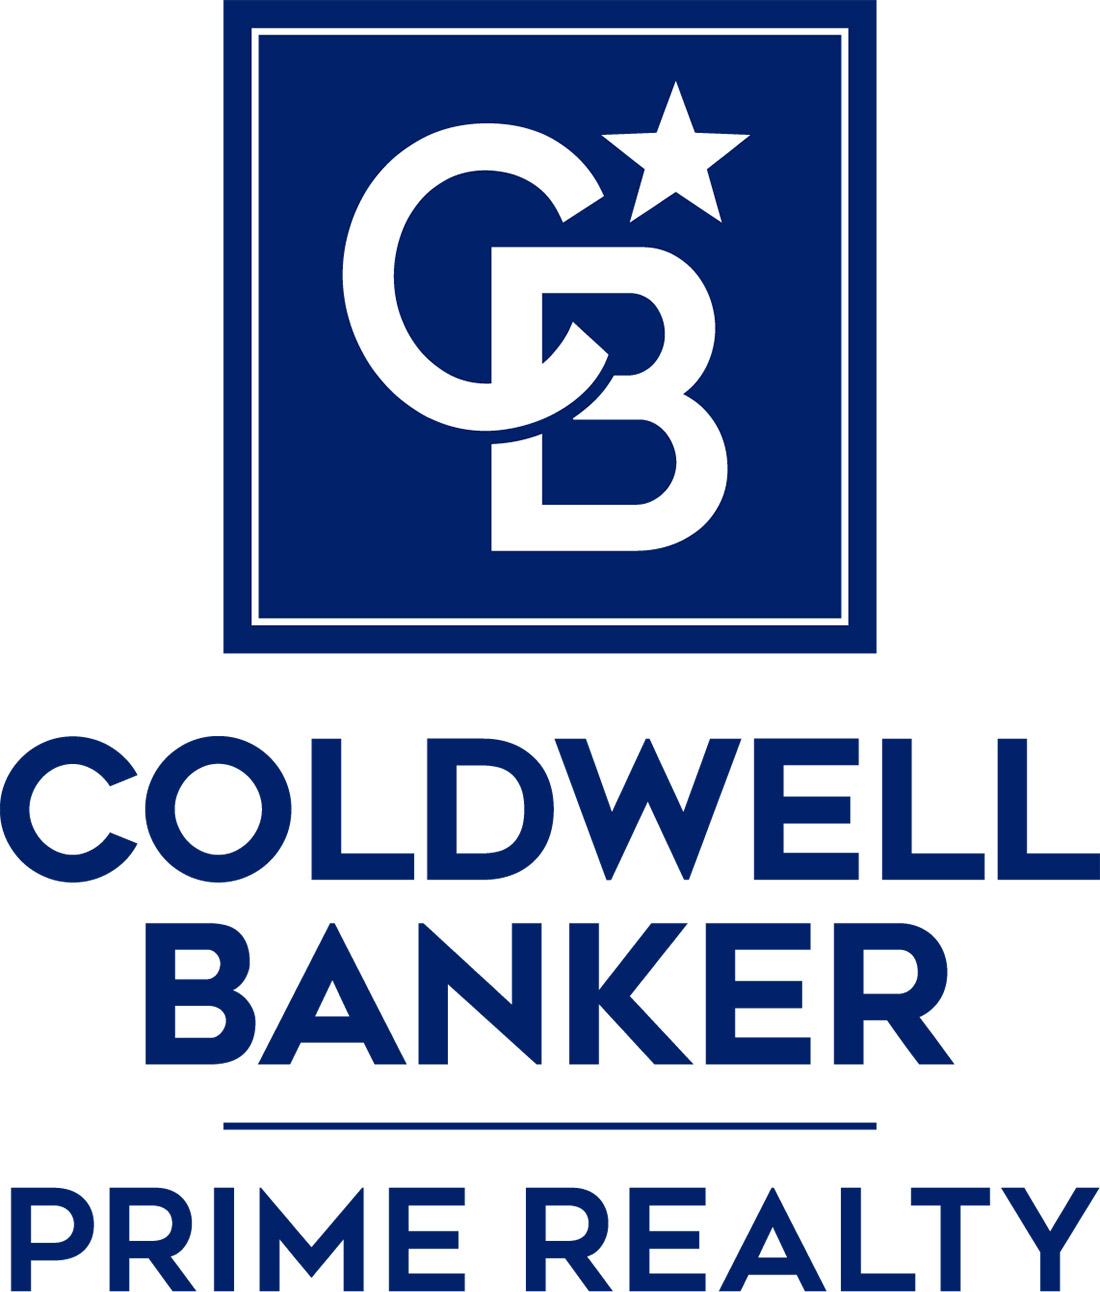 William Brett Videon - Coldwell Banker Prime Realty - Carbondale, IL Logo